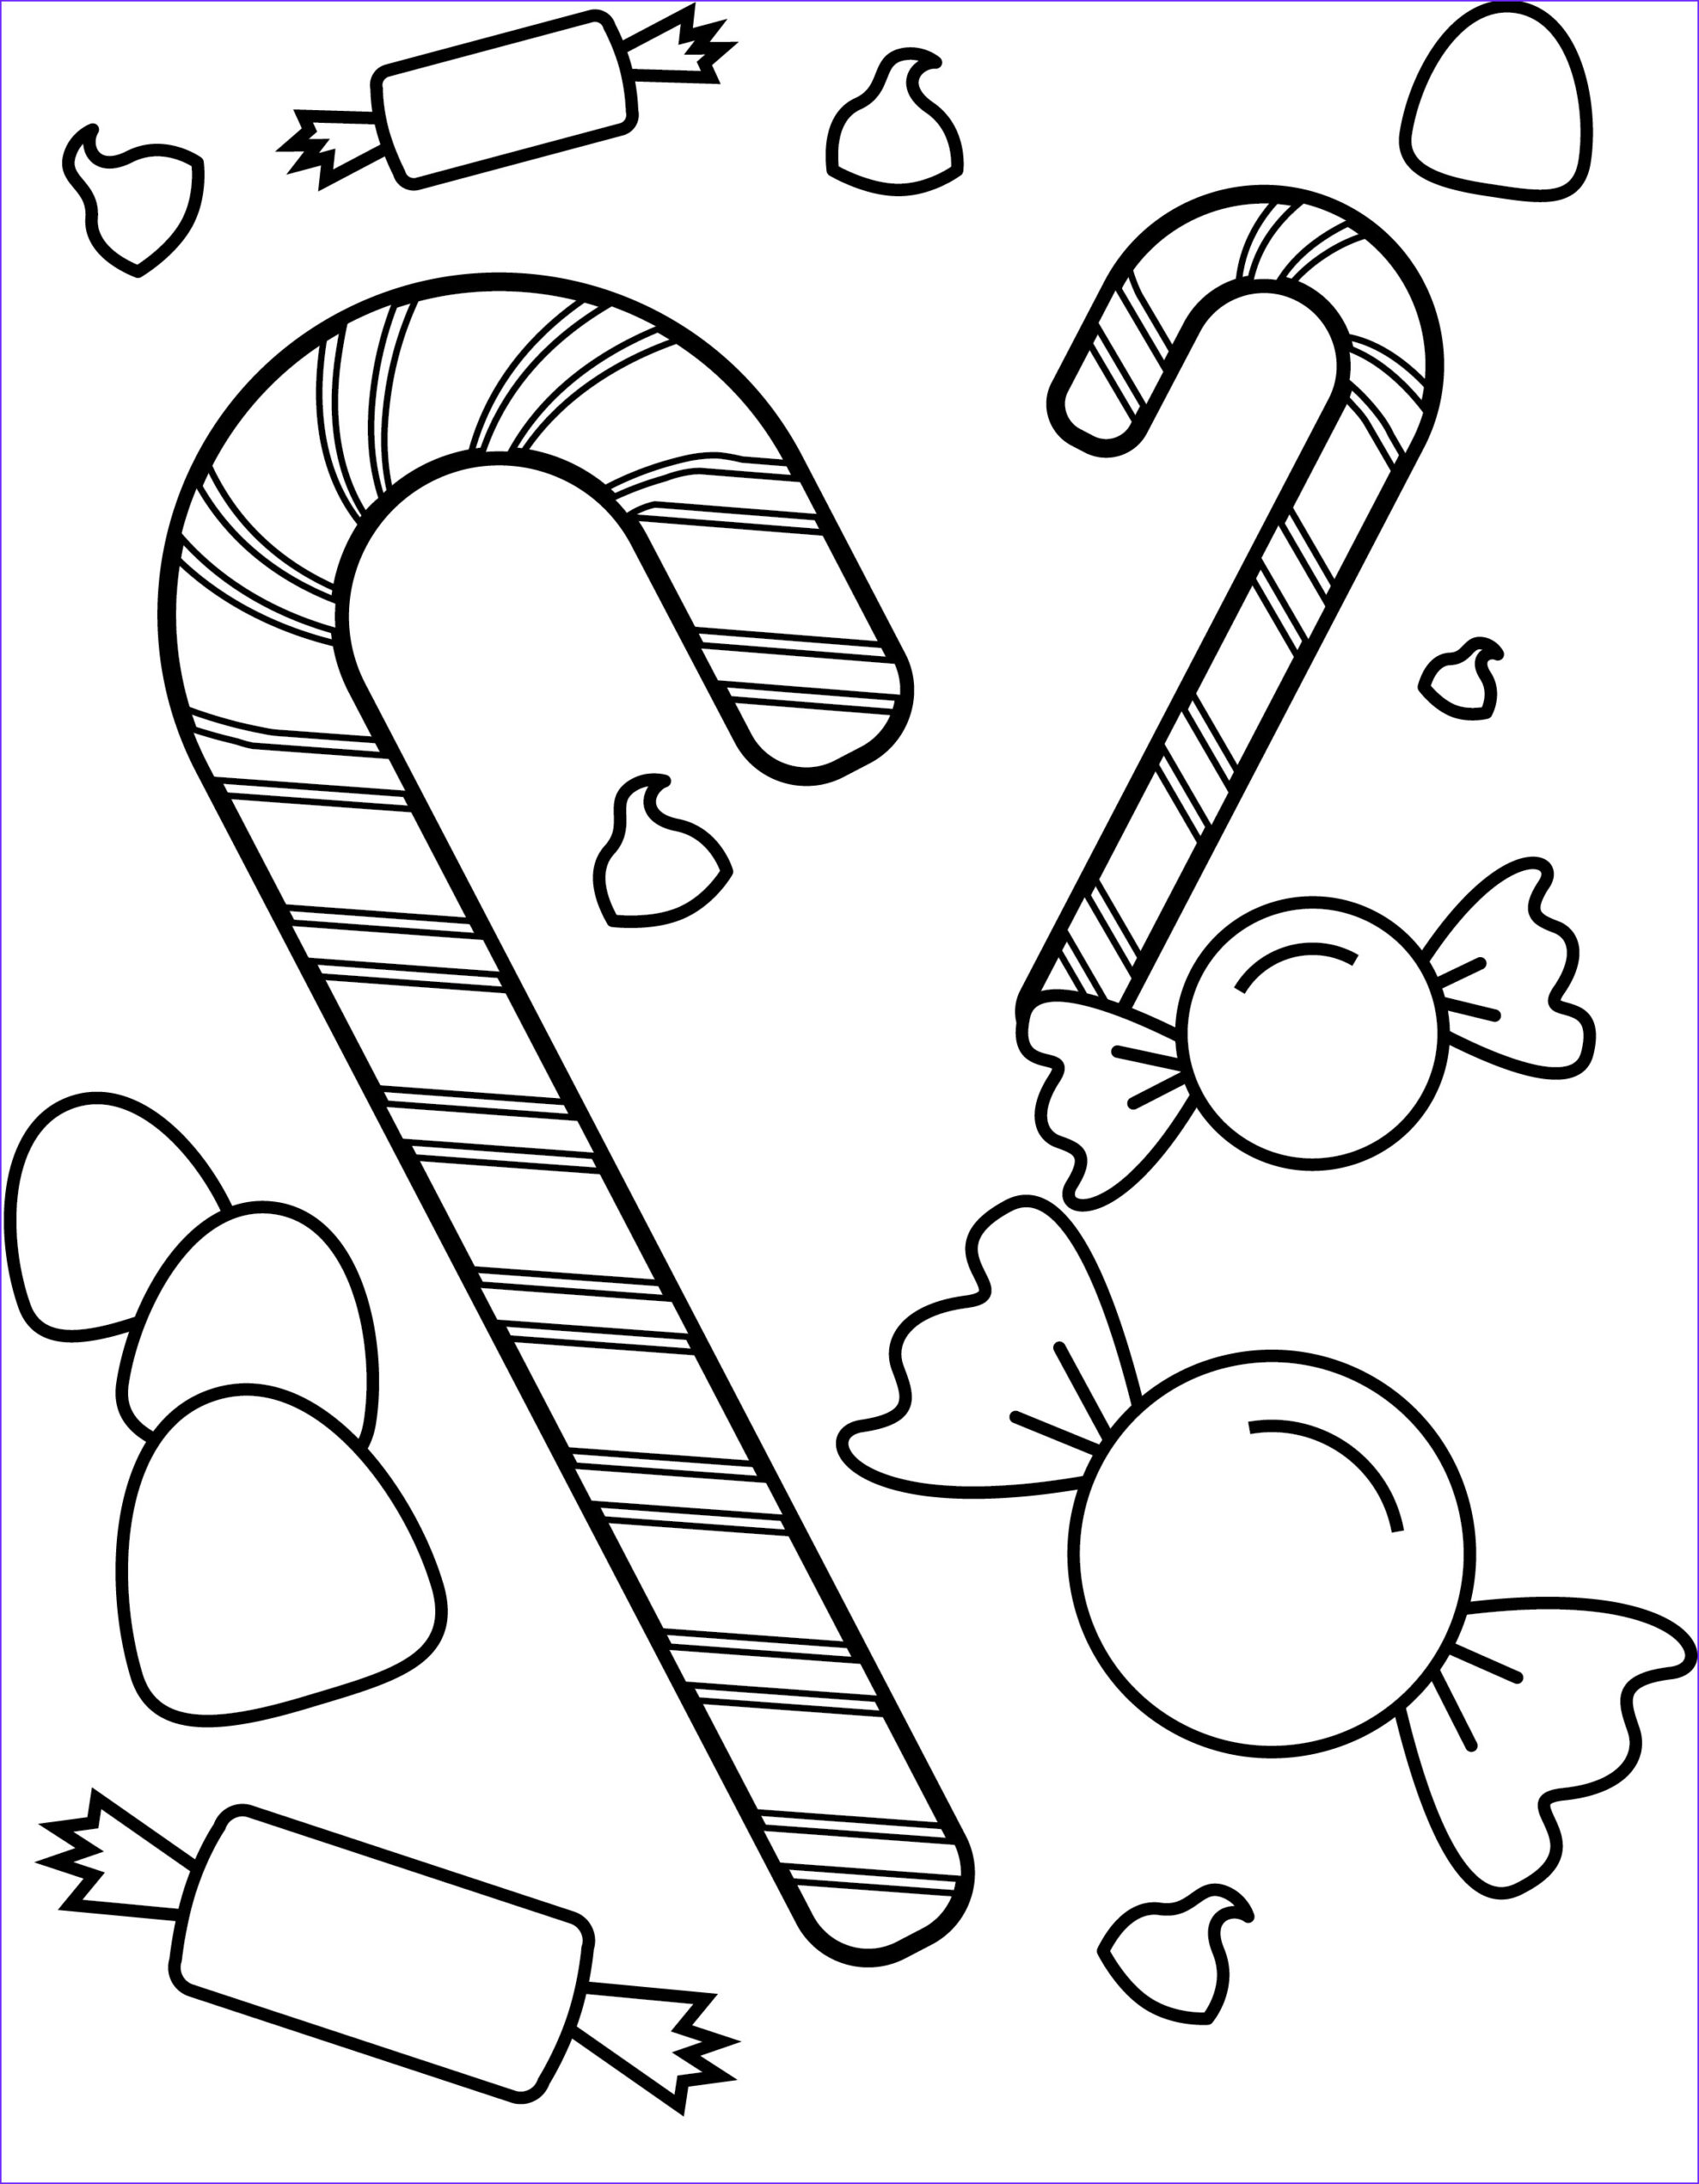 Sweets Coloring Pages Cool Photos Free Printable Candy Coloring Pages for Kids